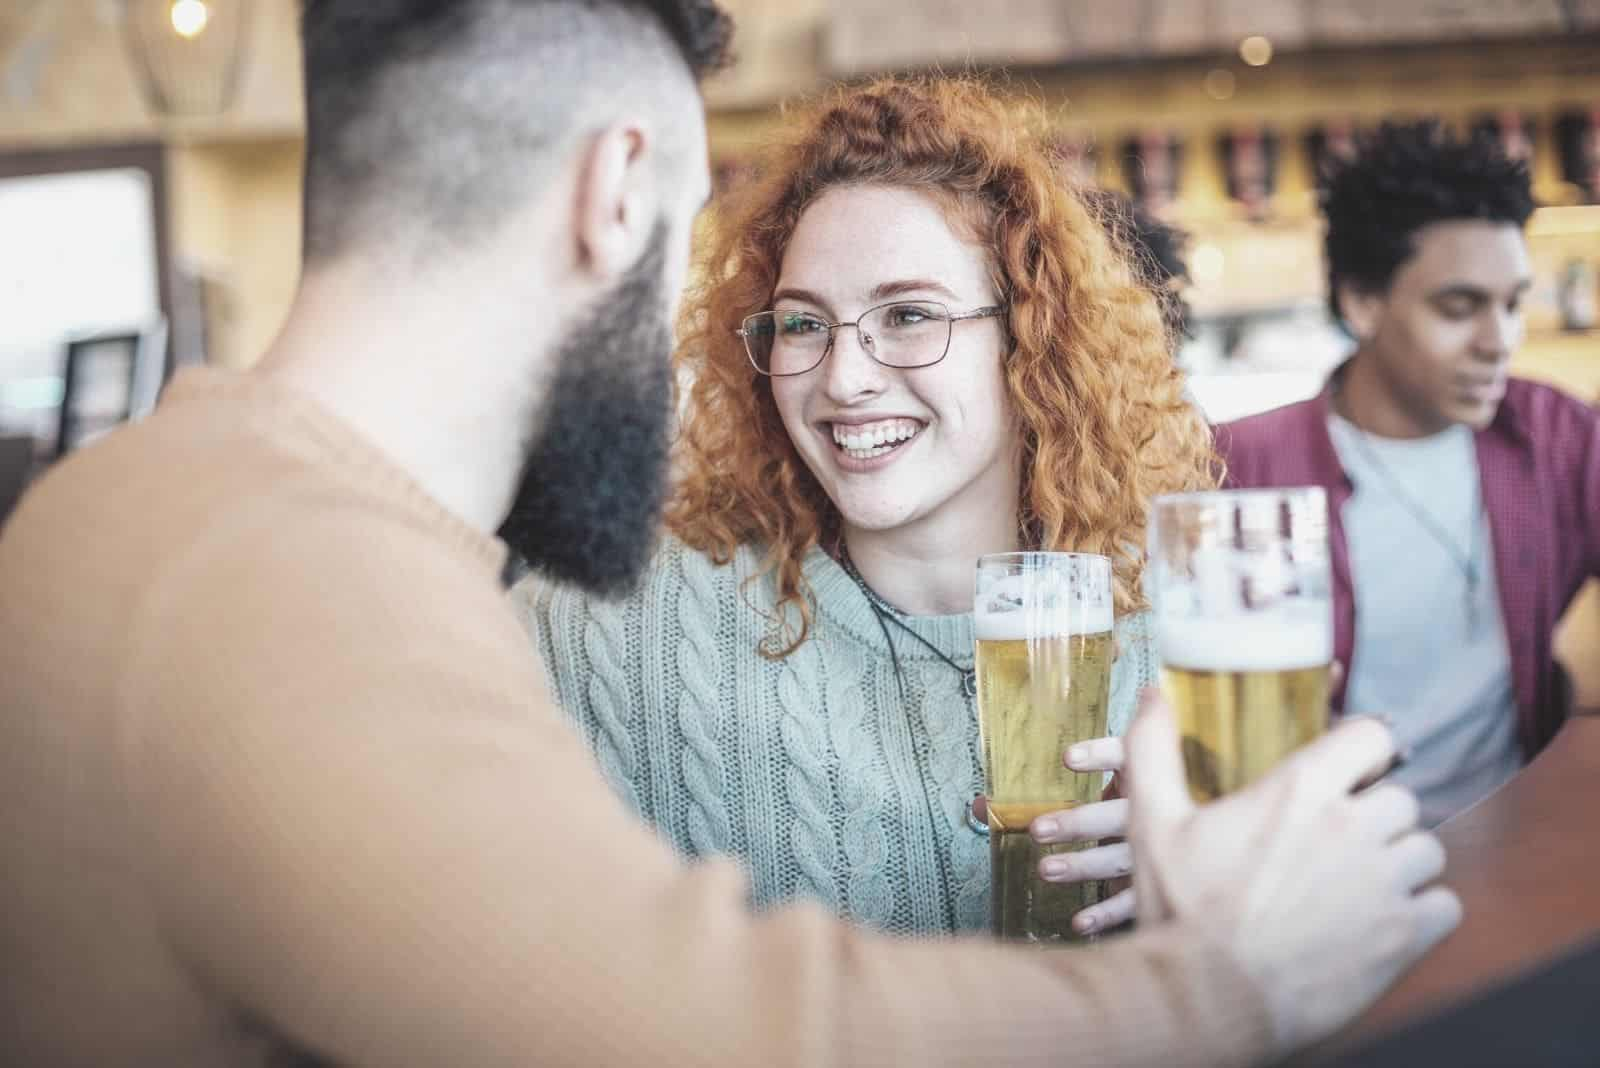 man and woman drinking beer in a bar with friends